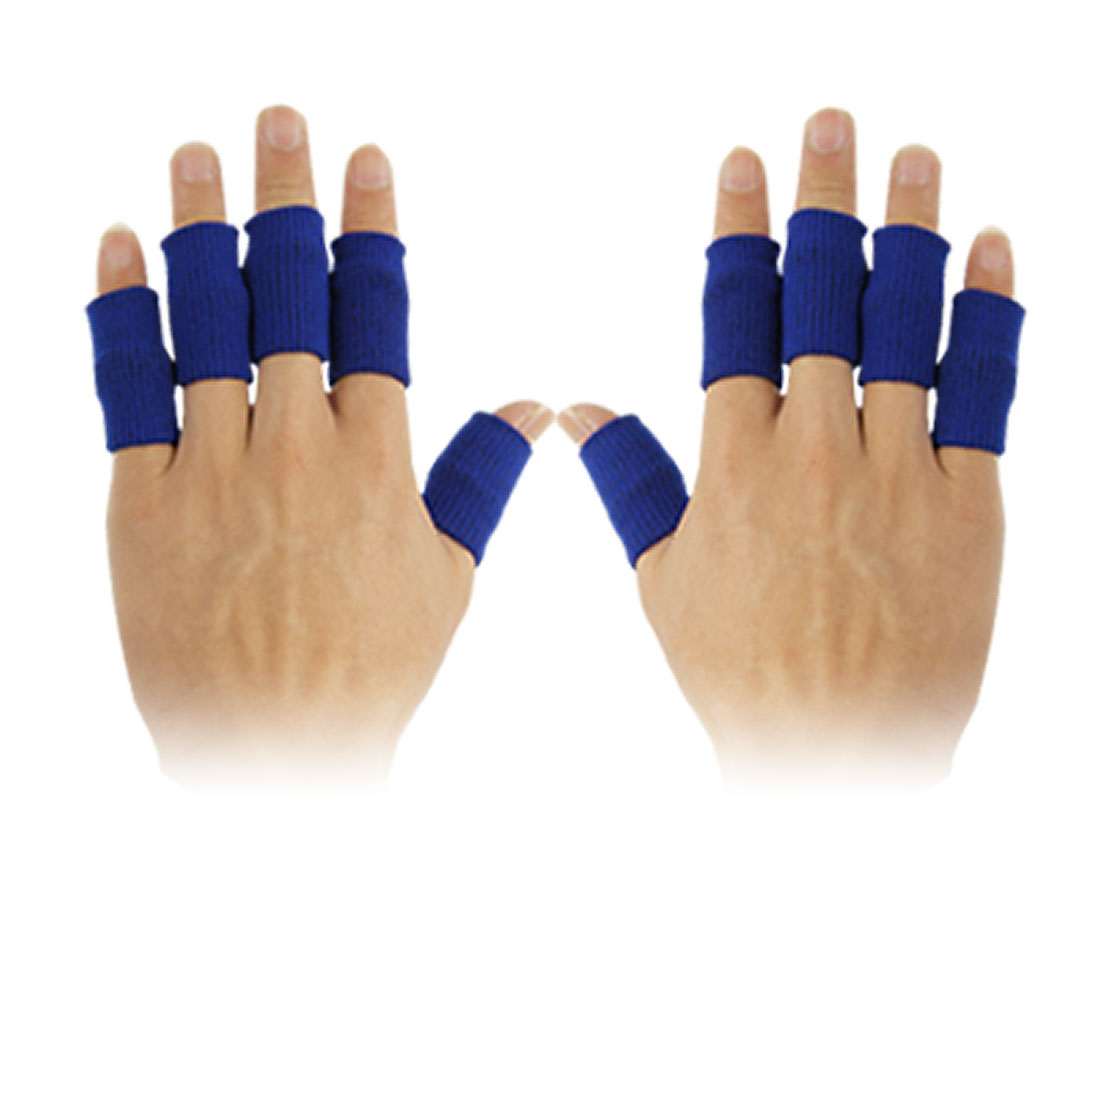 Sporting 10 Pcs Finger Blue Stretchy Protector Sleeve